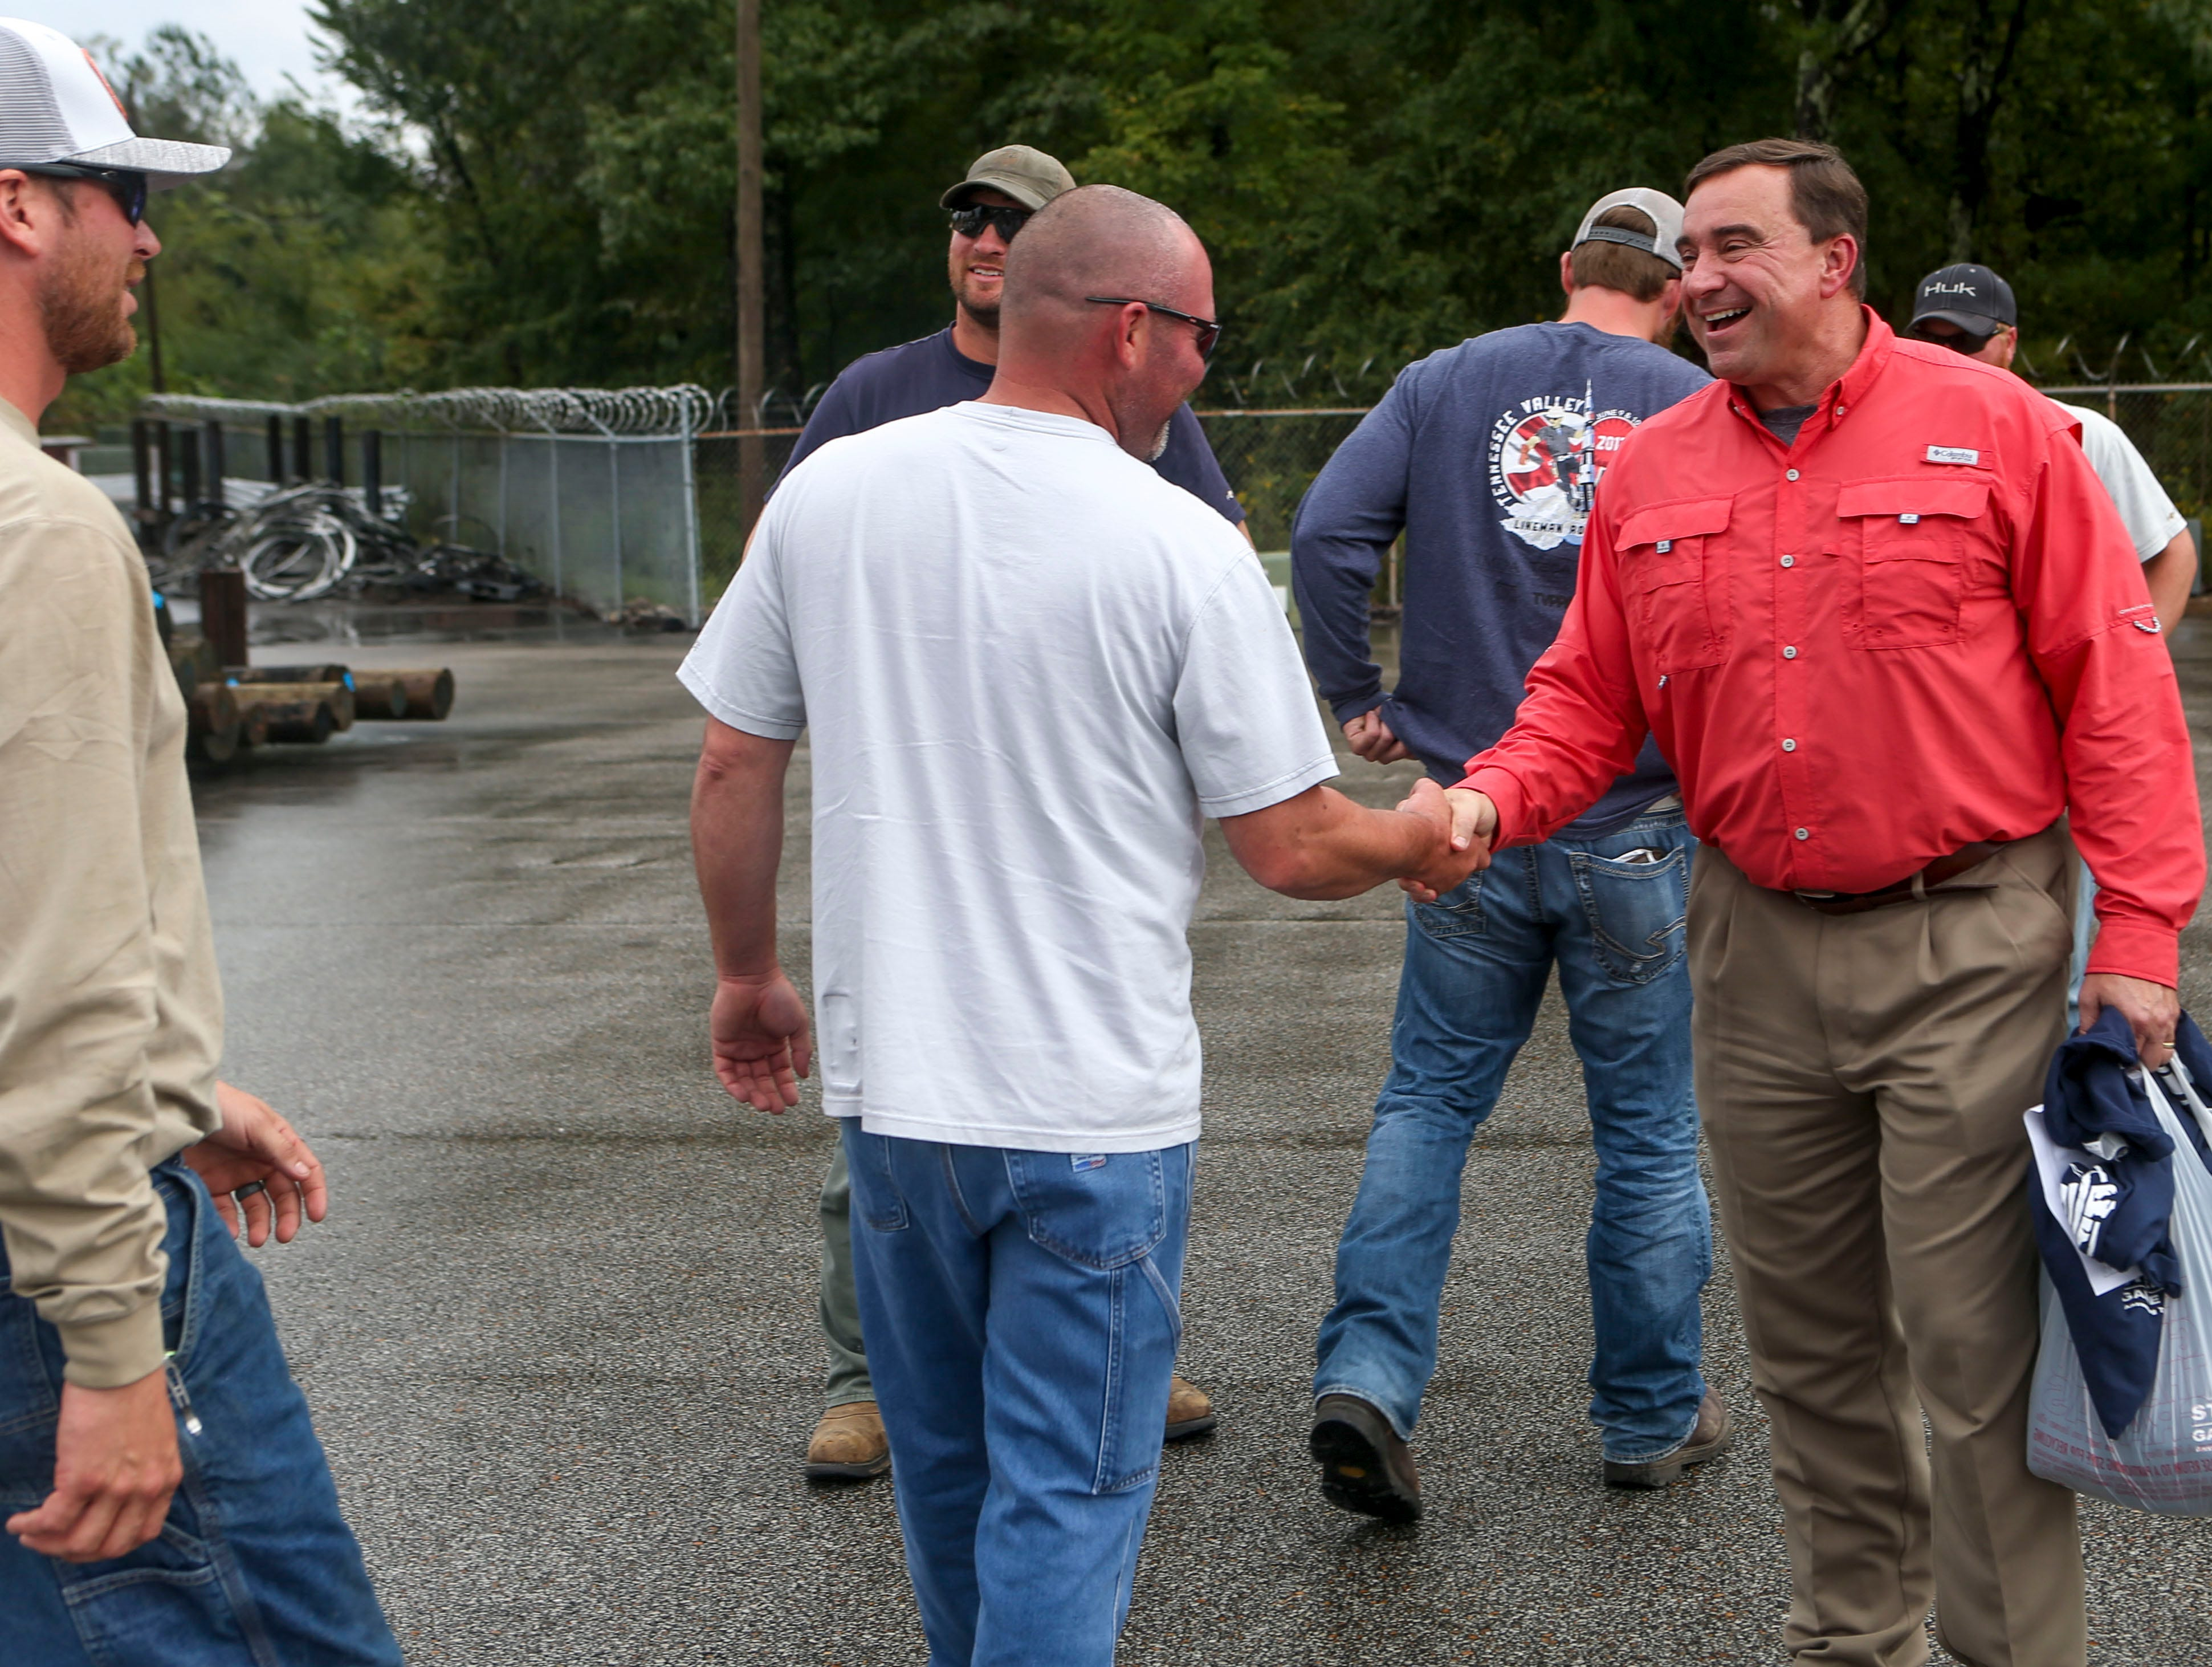 Vice President of operations Mike Russell shakes hands with a team of linemen arriving home that had been dispatched to assist areas affected by Hurricane Florence at Southwest Tennessee Electric in Jackson, Tenn., Monday, Sept. 24, 2018.